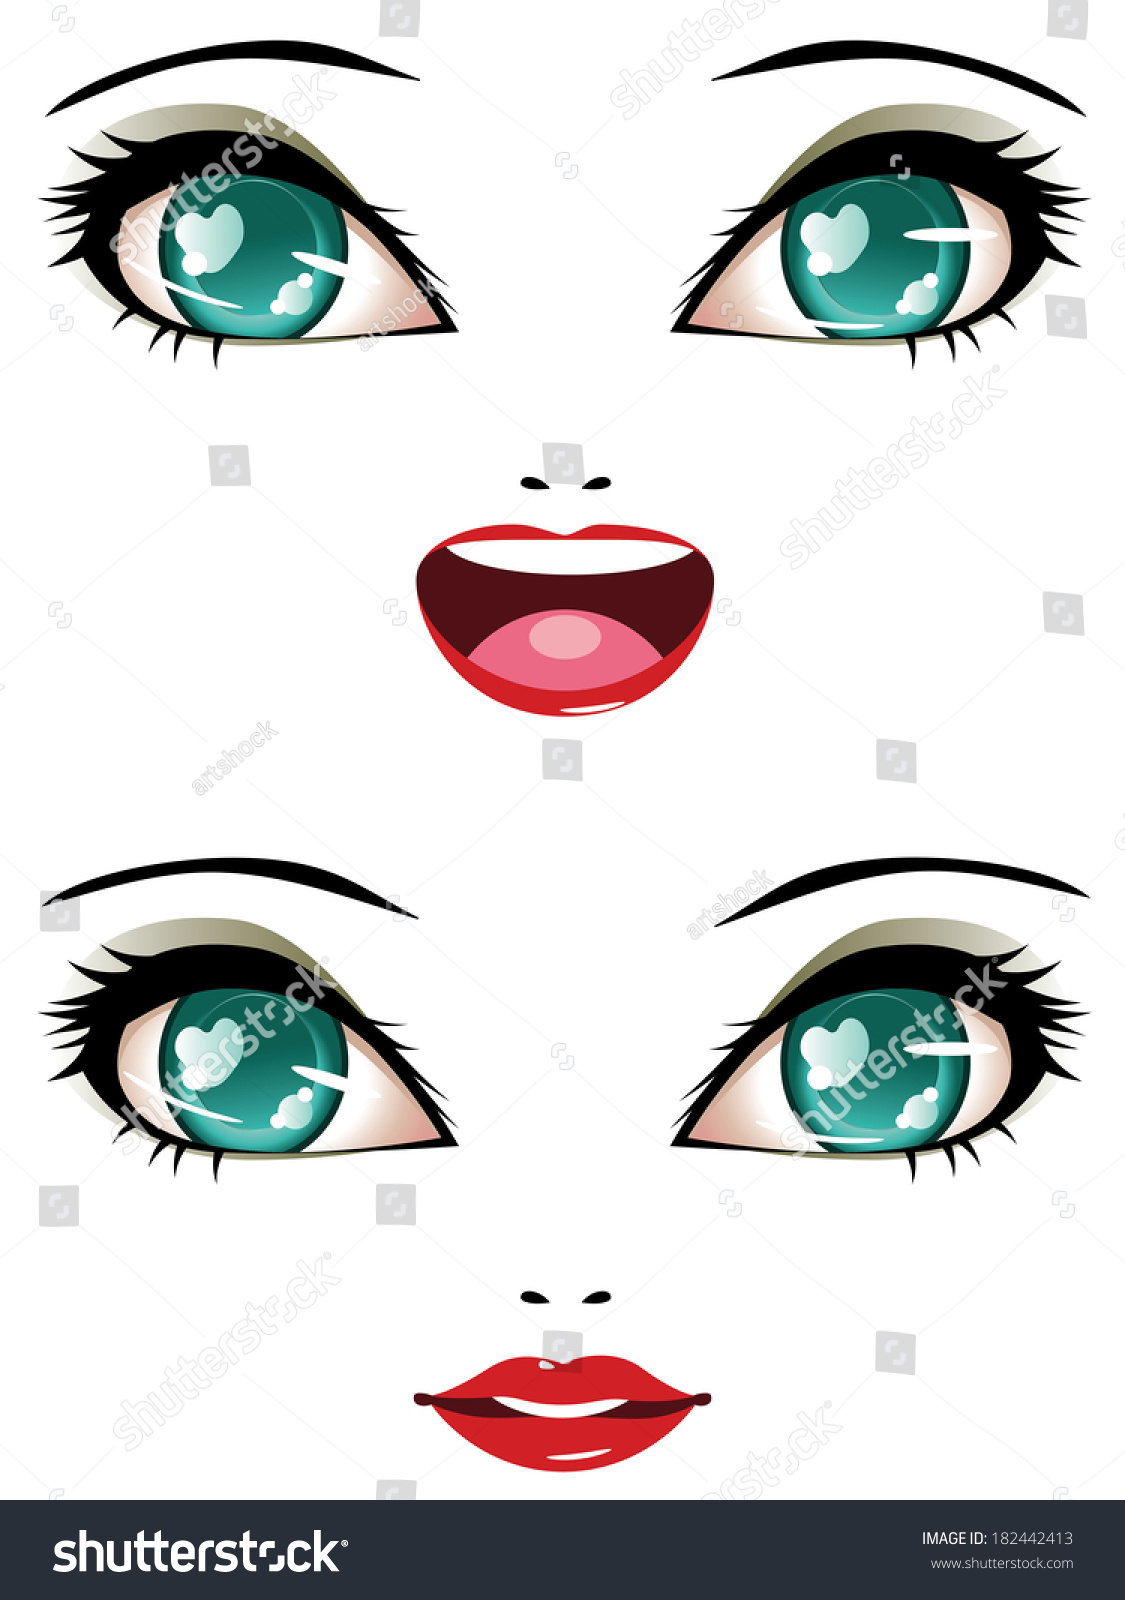 Royalty-free Smiling female face with stylized anime ...